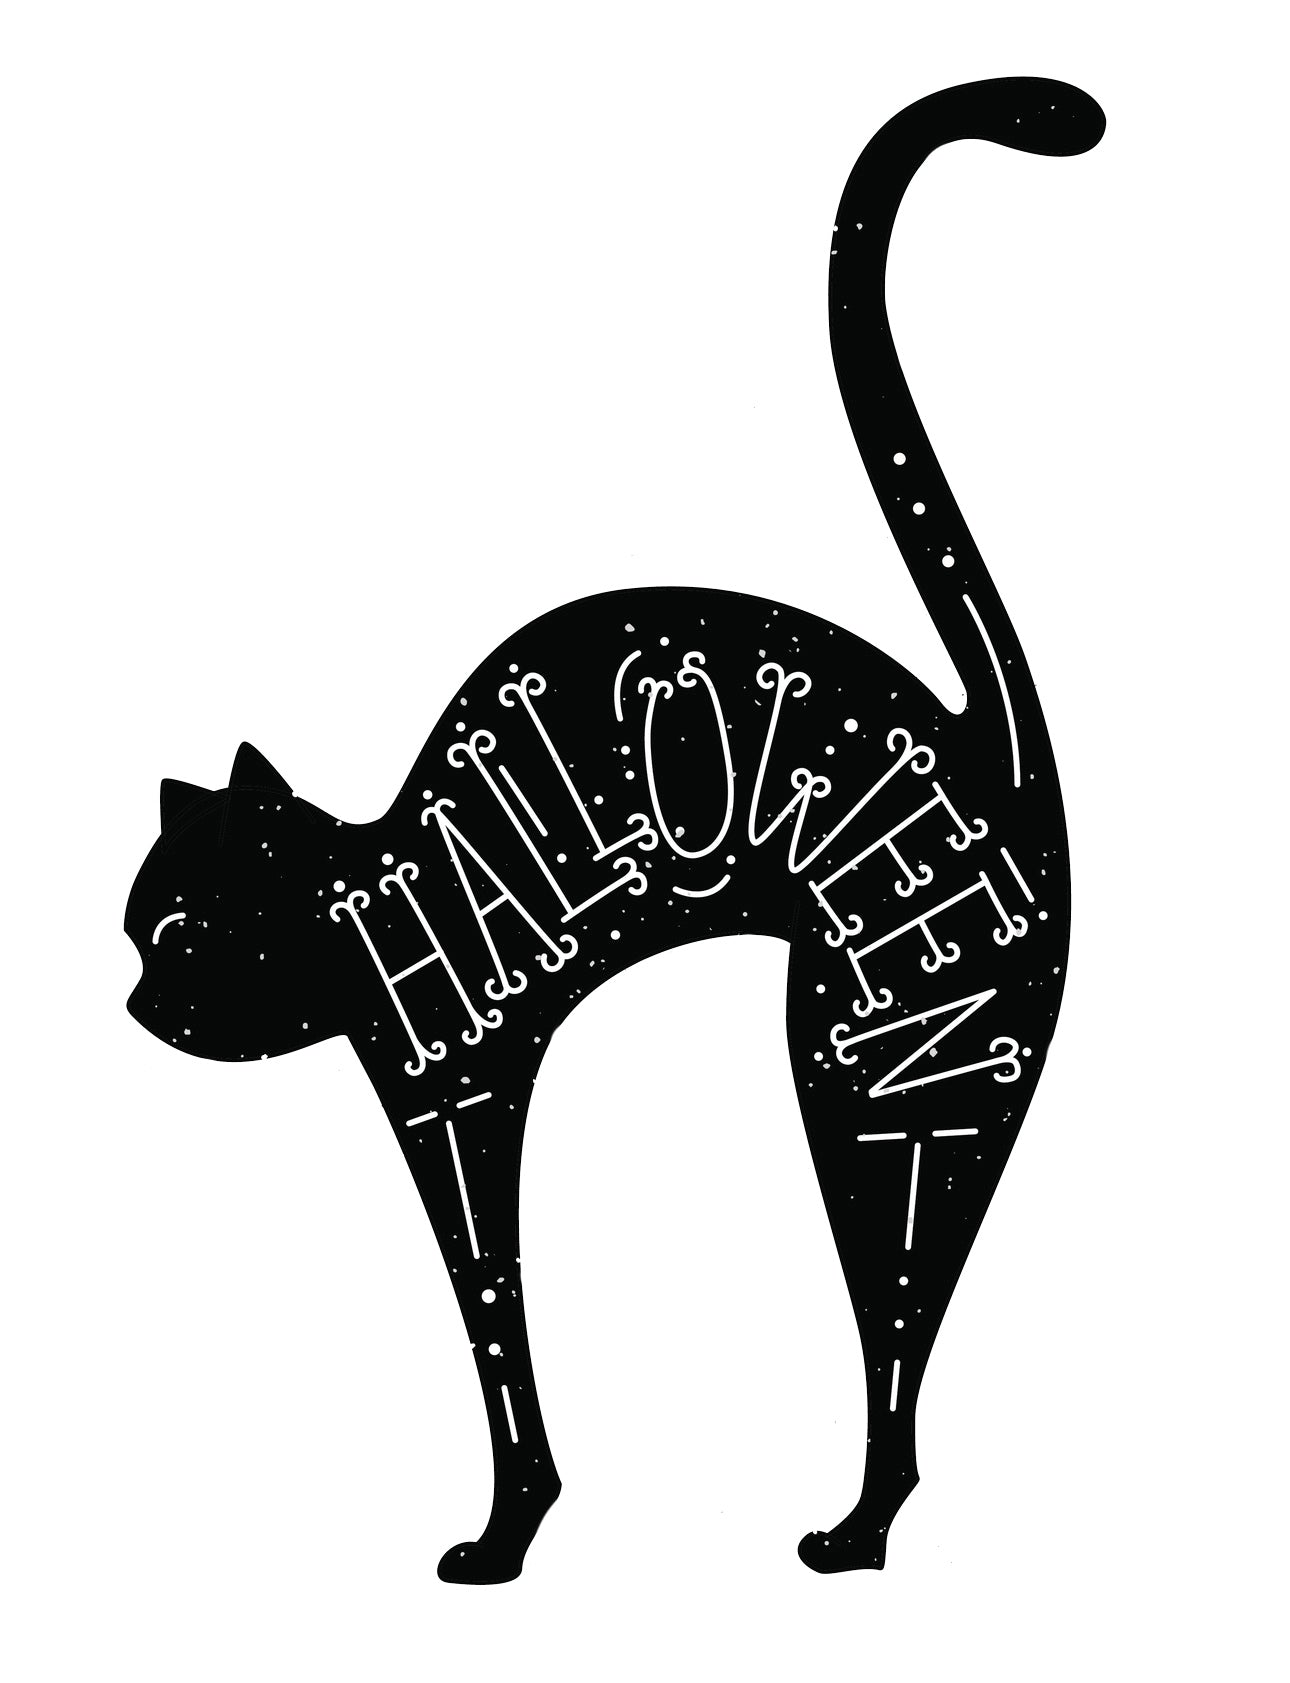 Creepy Scared Halloween Black Bad Luck Kitty Cat Vinyl Decal Sticker